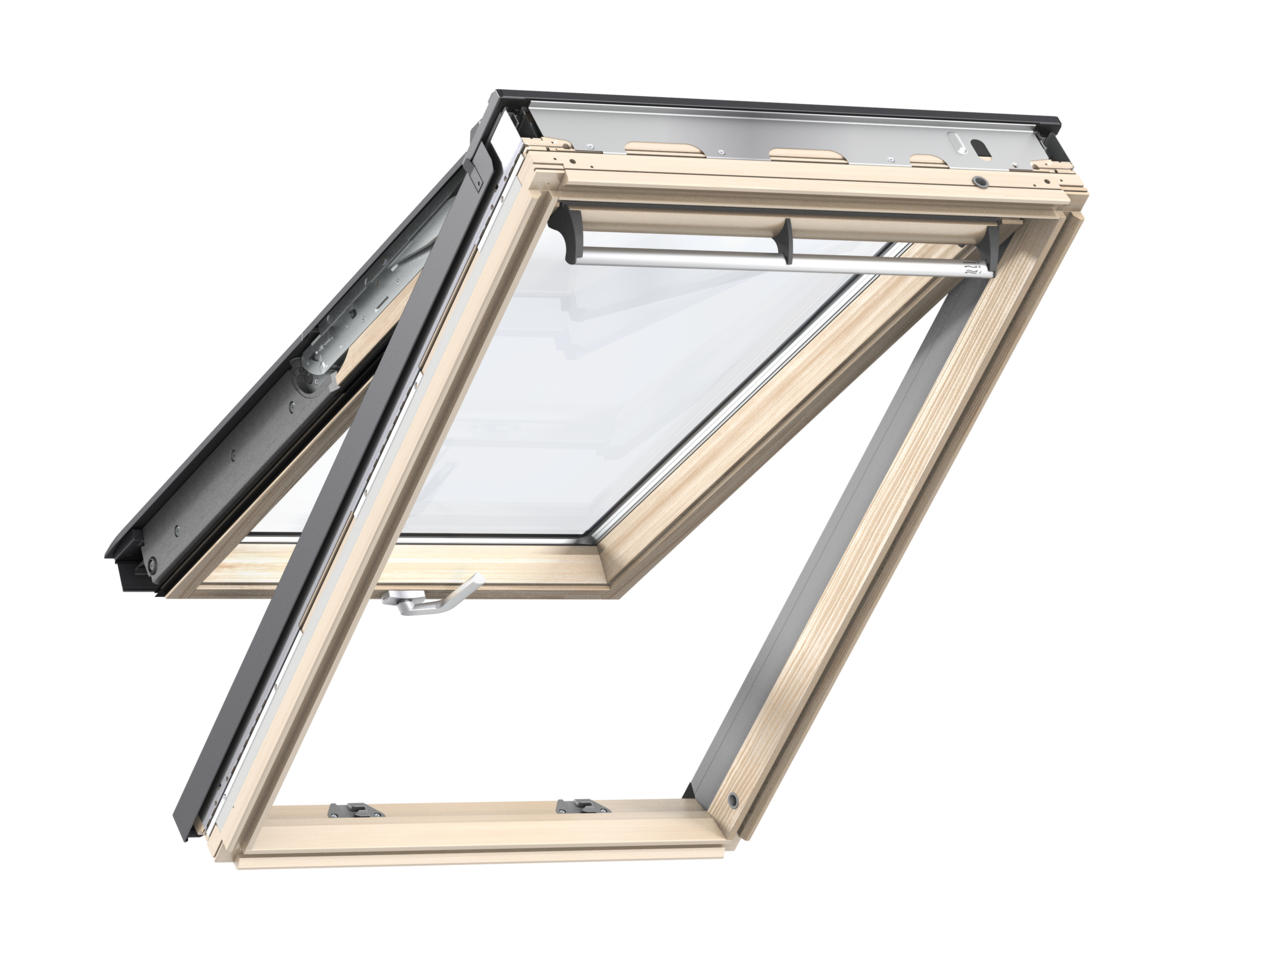 Velux GPL MK04 780 x 980mm Top Hung Standard 70Pane Roof Window - Pine